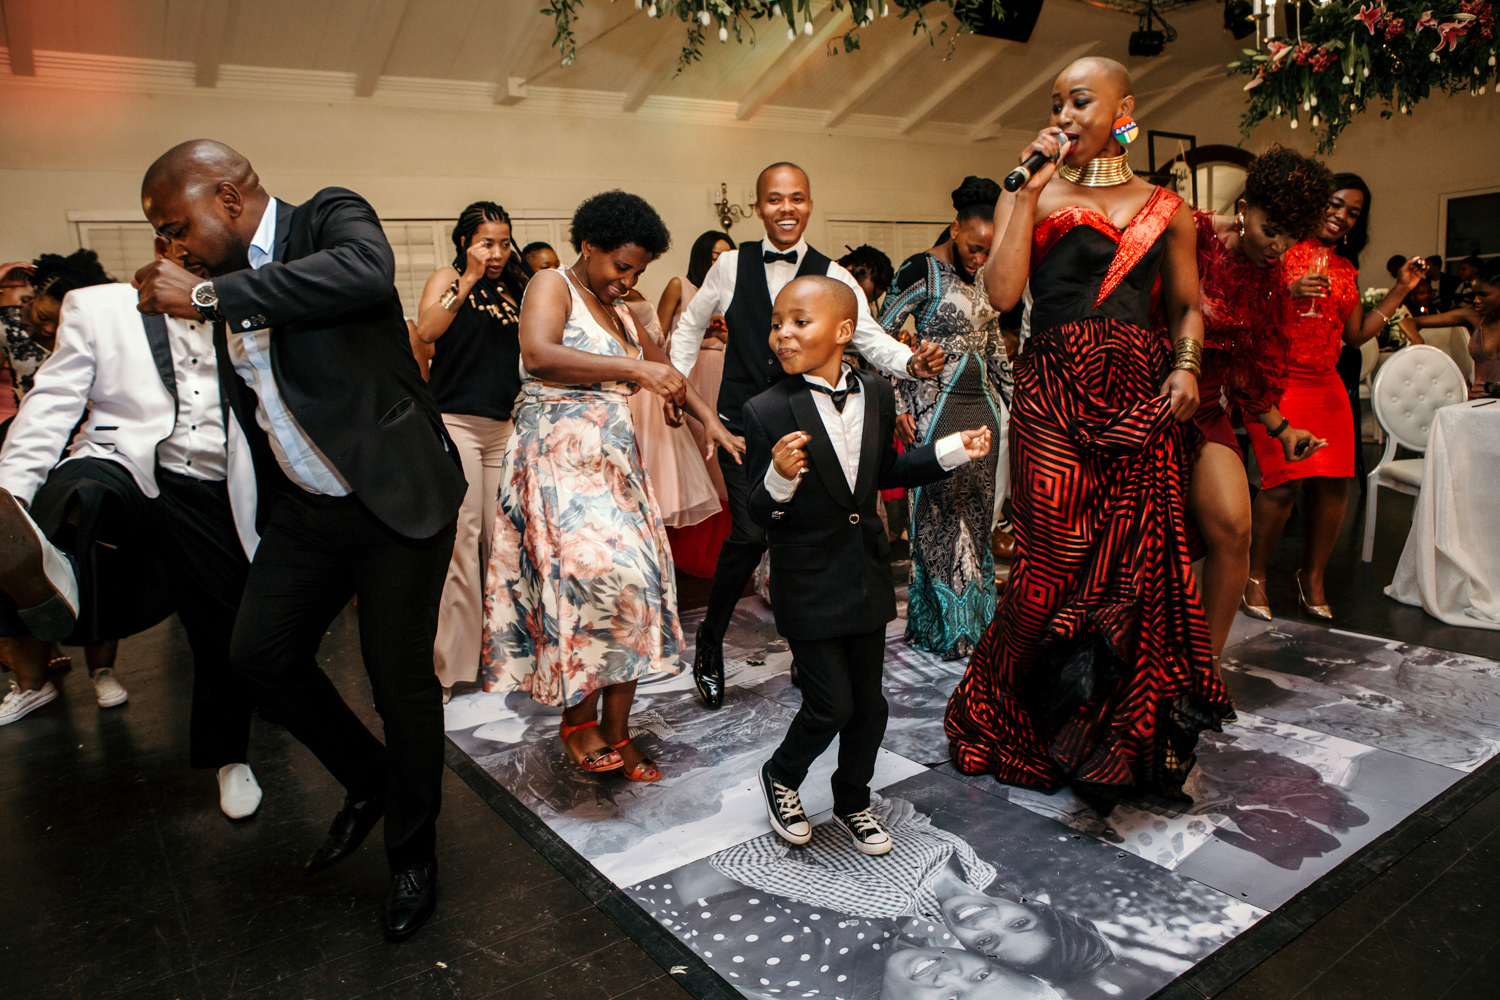 an image taken by Vividblue of a woman in a red and black dress singing and everyone dancing around her at the wedding at Val de Vie.